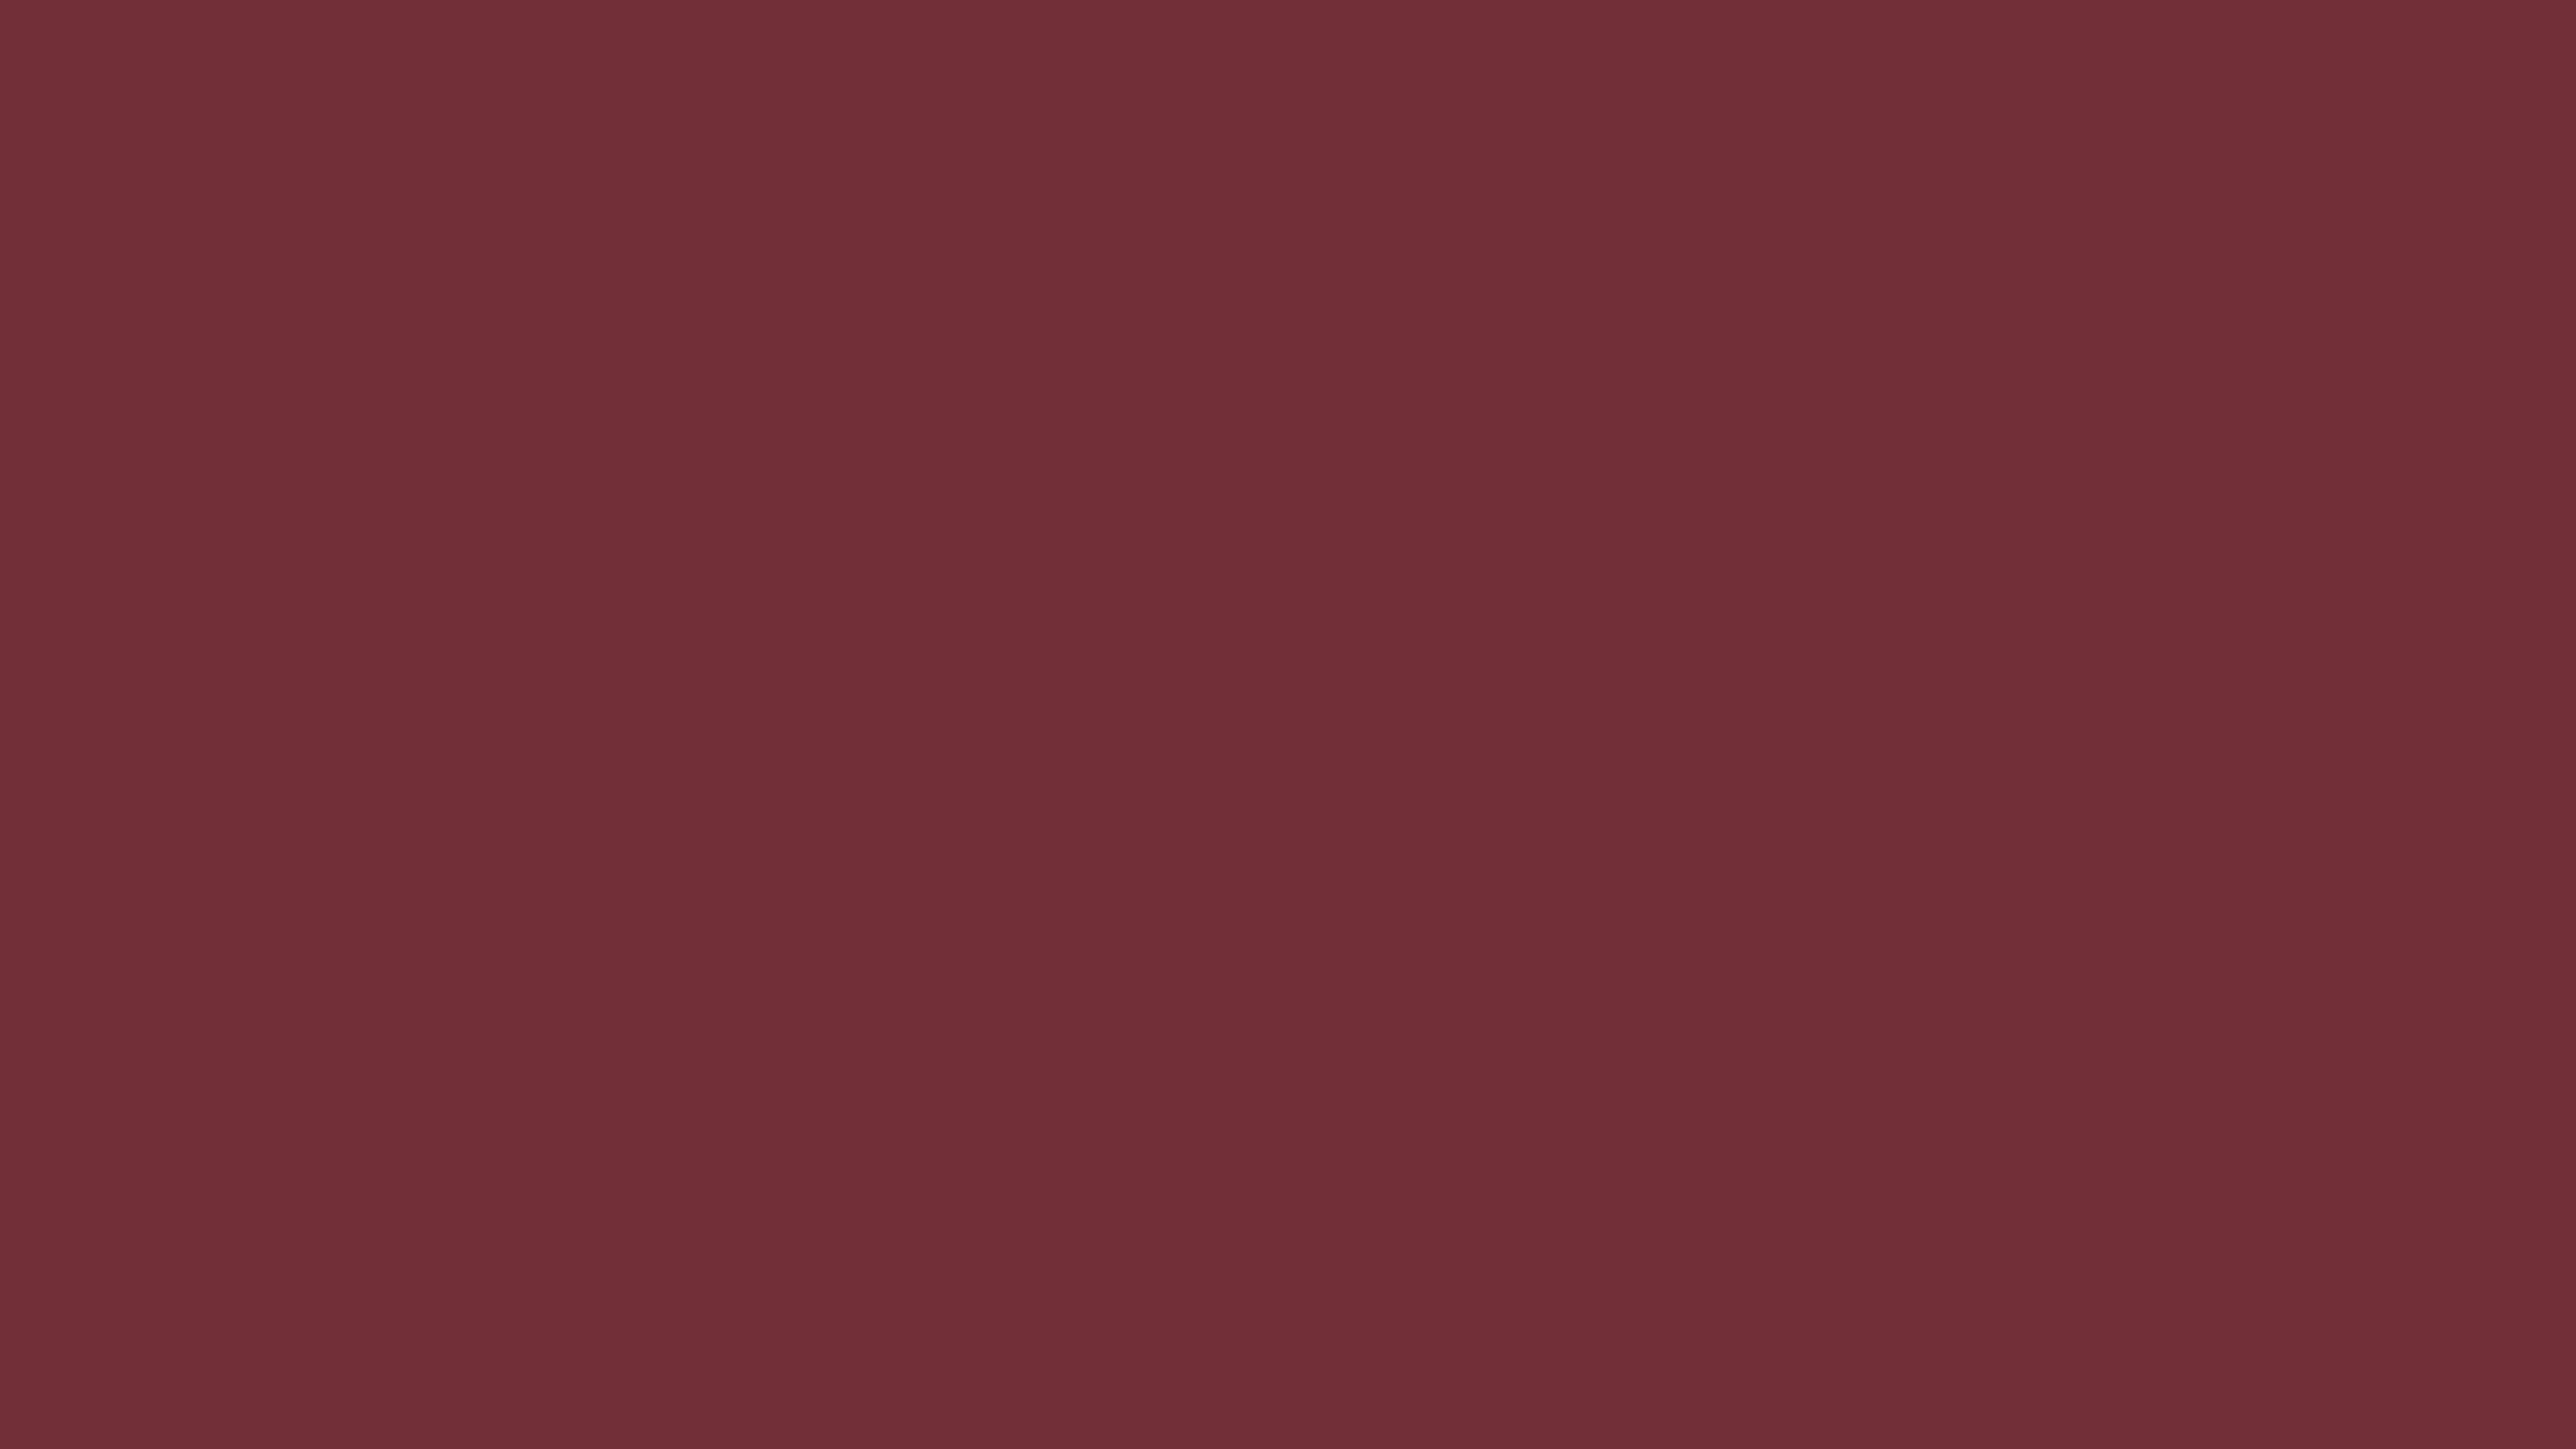 4096x2304 Wine Solid Color Background